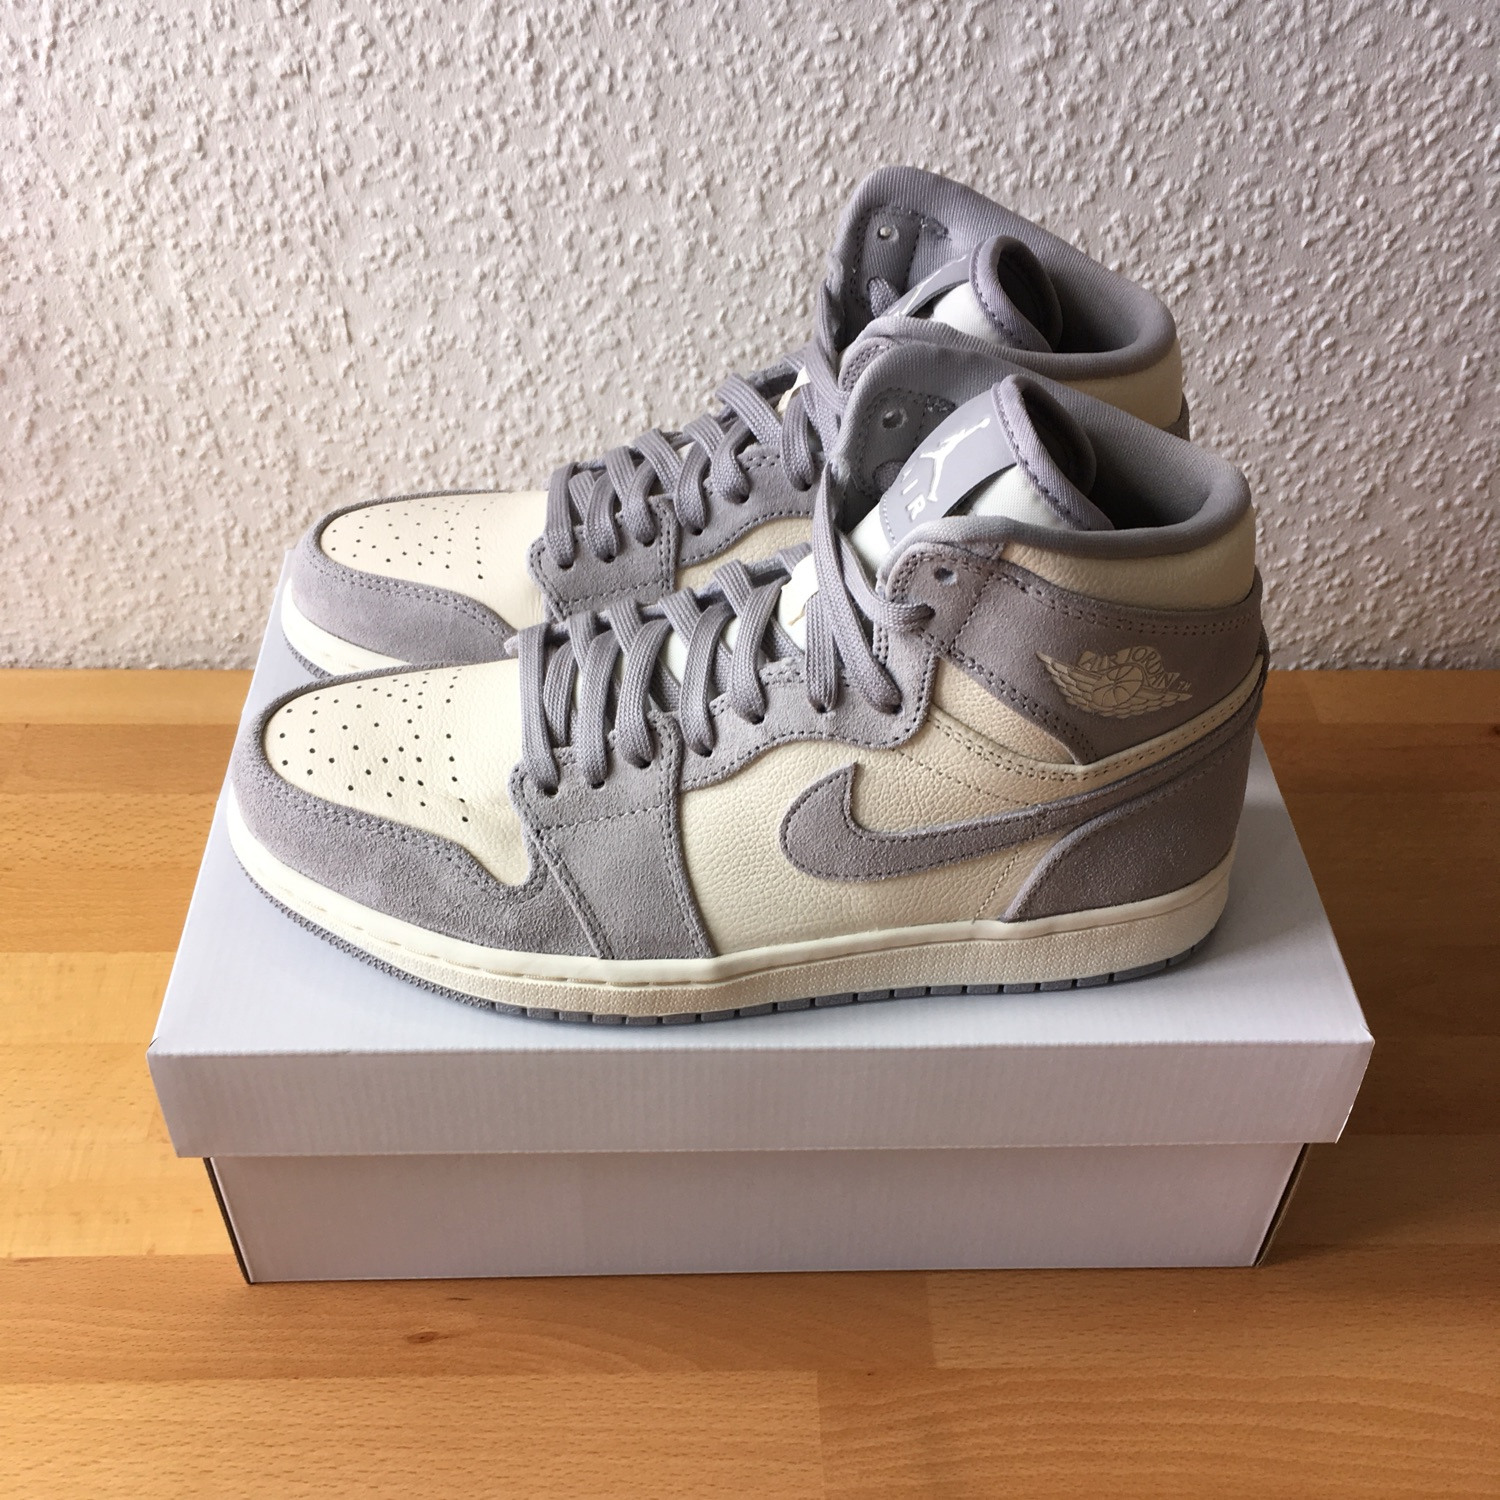 super specials buy popular stores Air Jordan 1 Pale Ivory Grey / White Wmns Us9